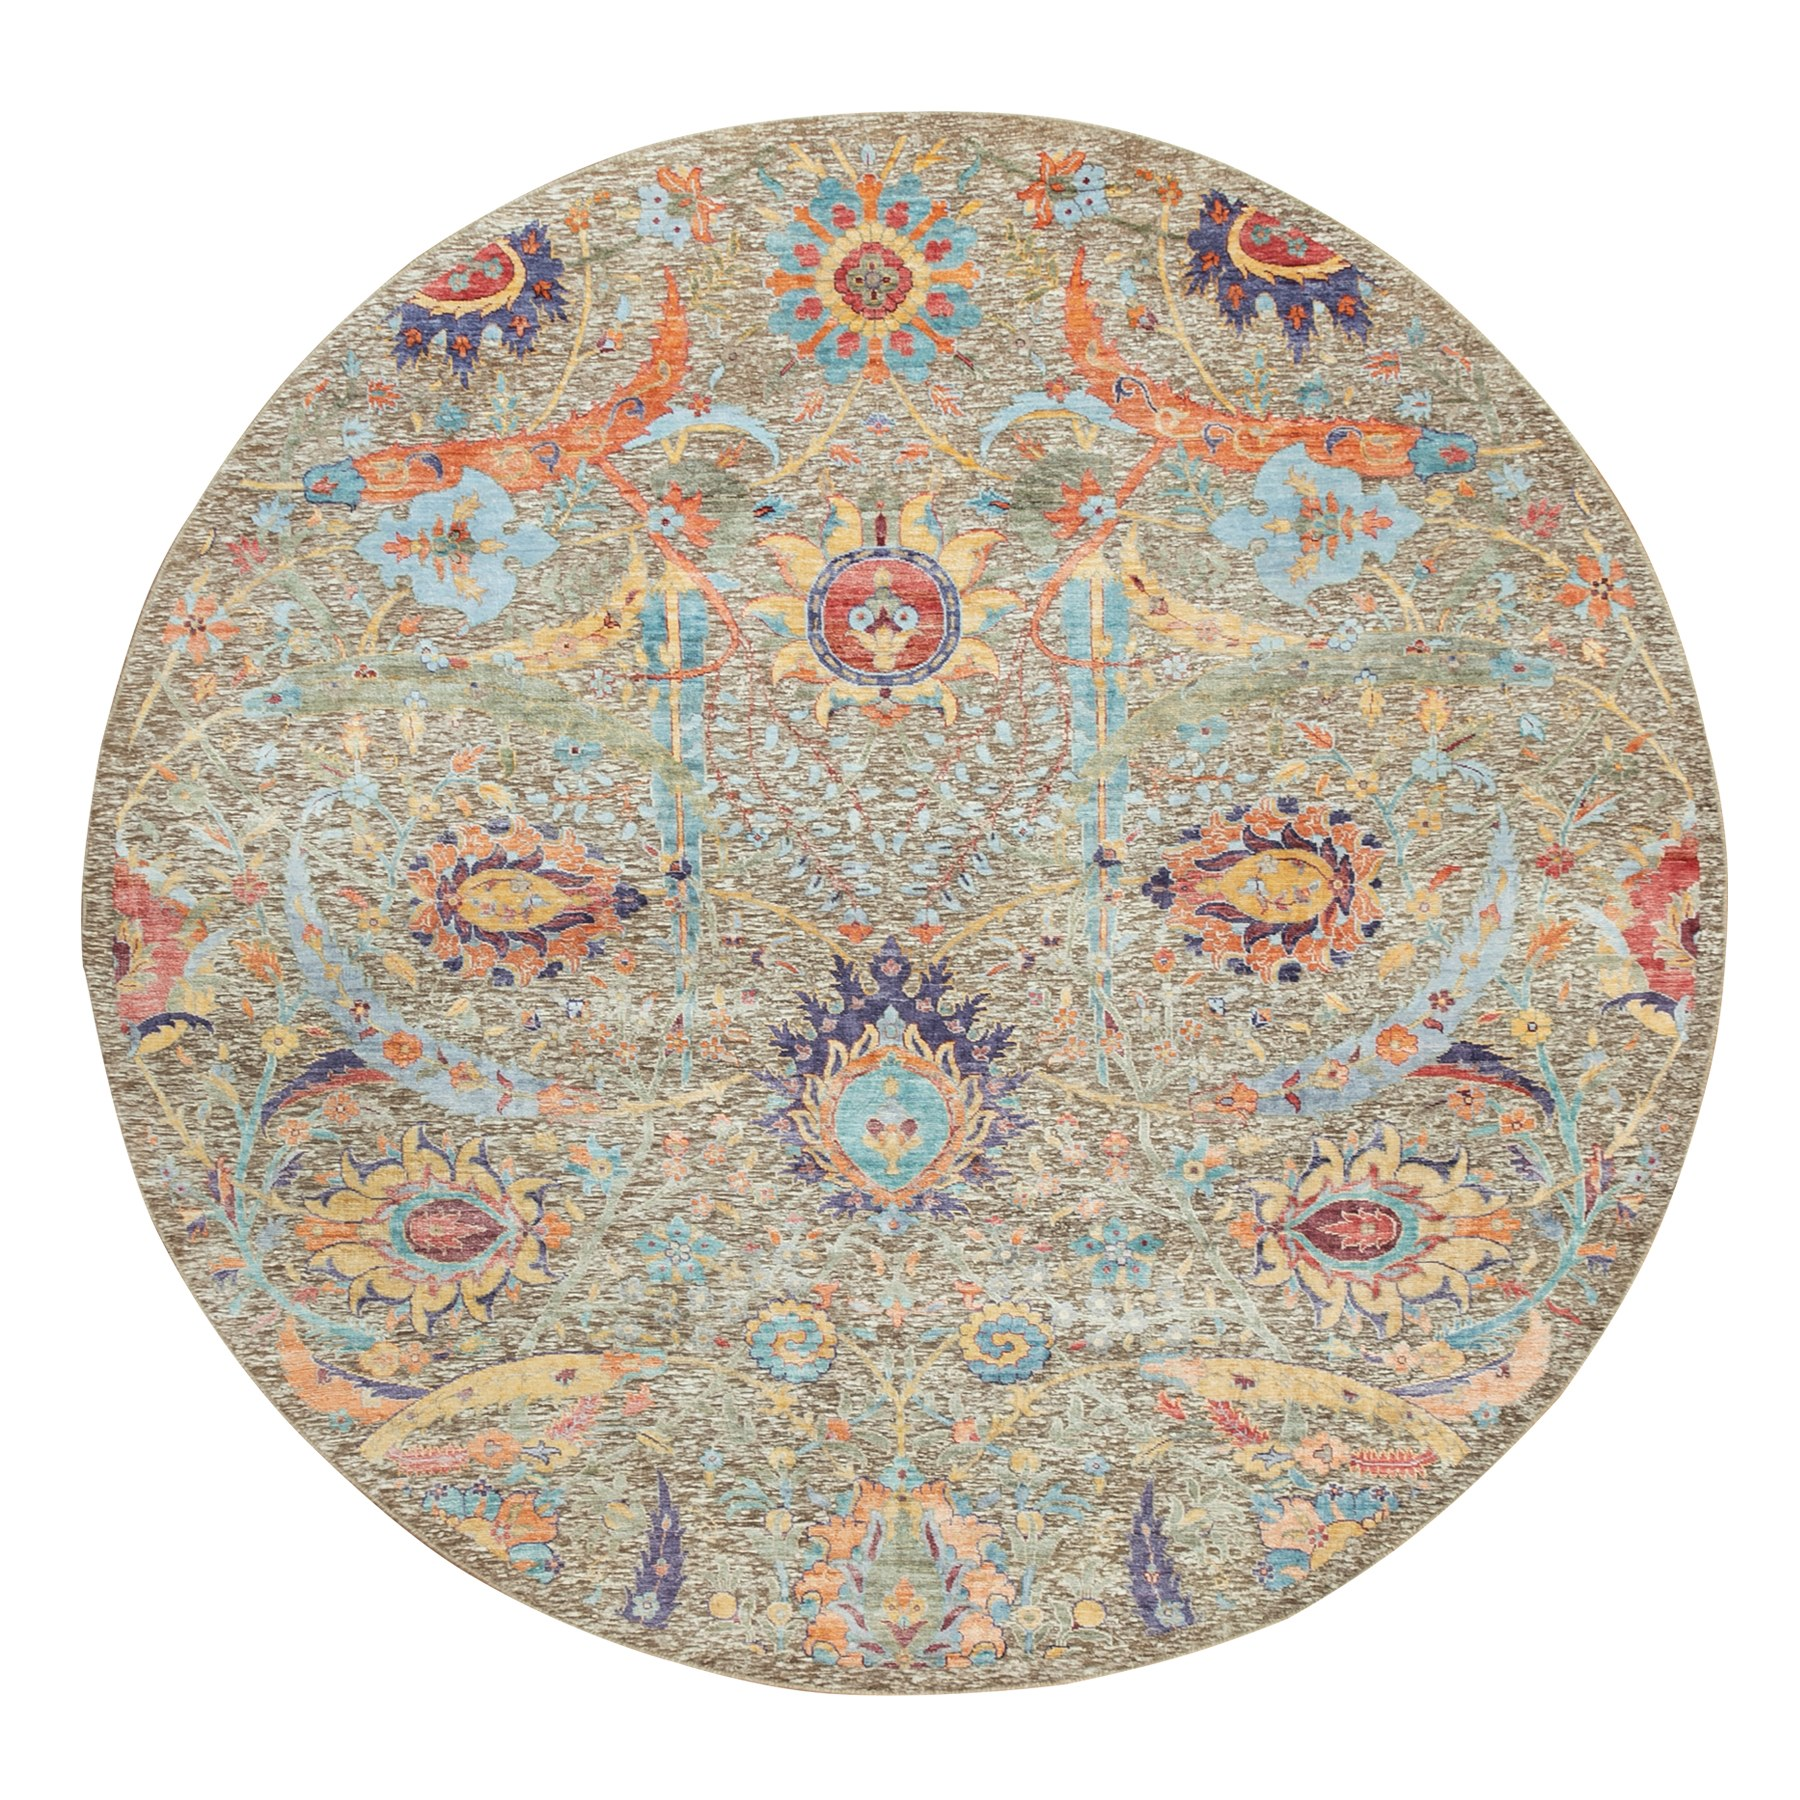 8'x8' Round Hand Knotted Taupe Silk With Textured Wool Sickle Leaf Design Oriental Rug